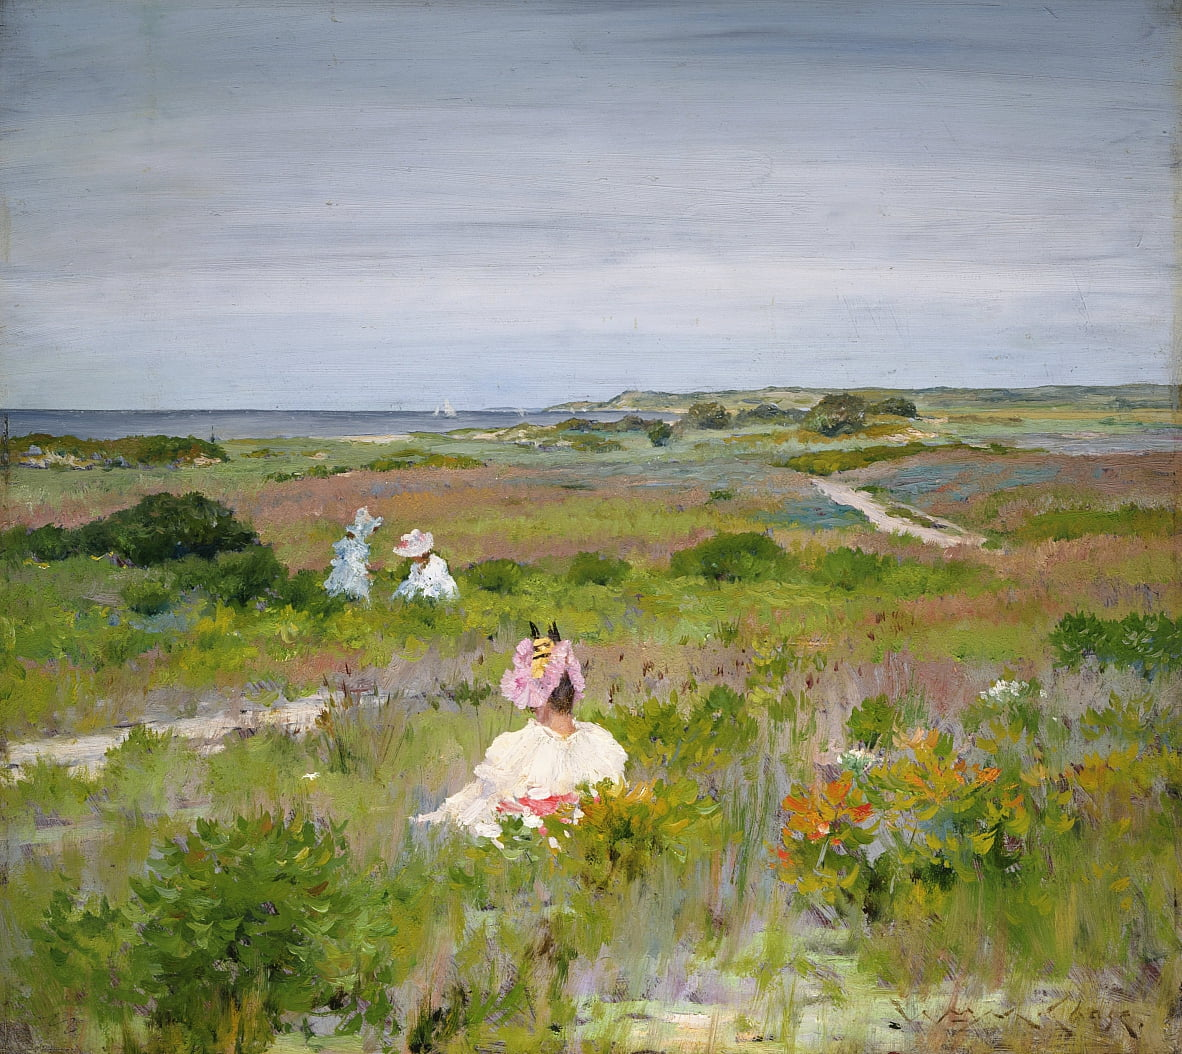 Paisaje: Shinnecock, Long Island de William Merritt Chase